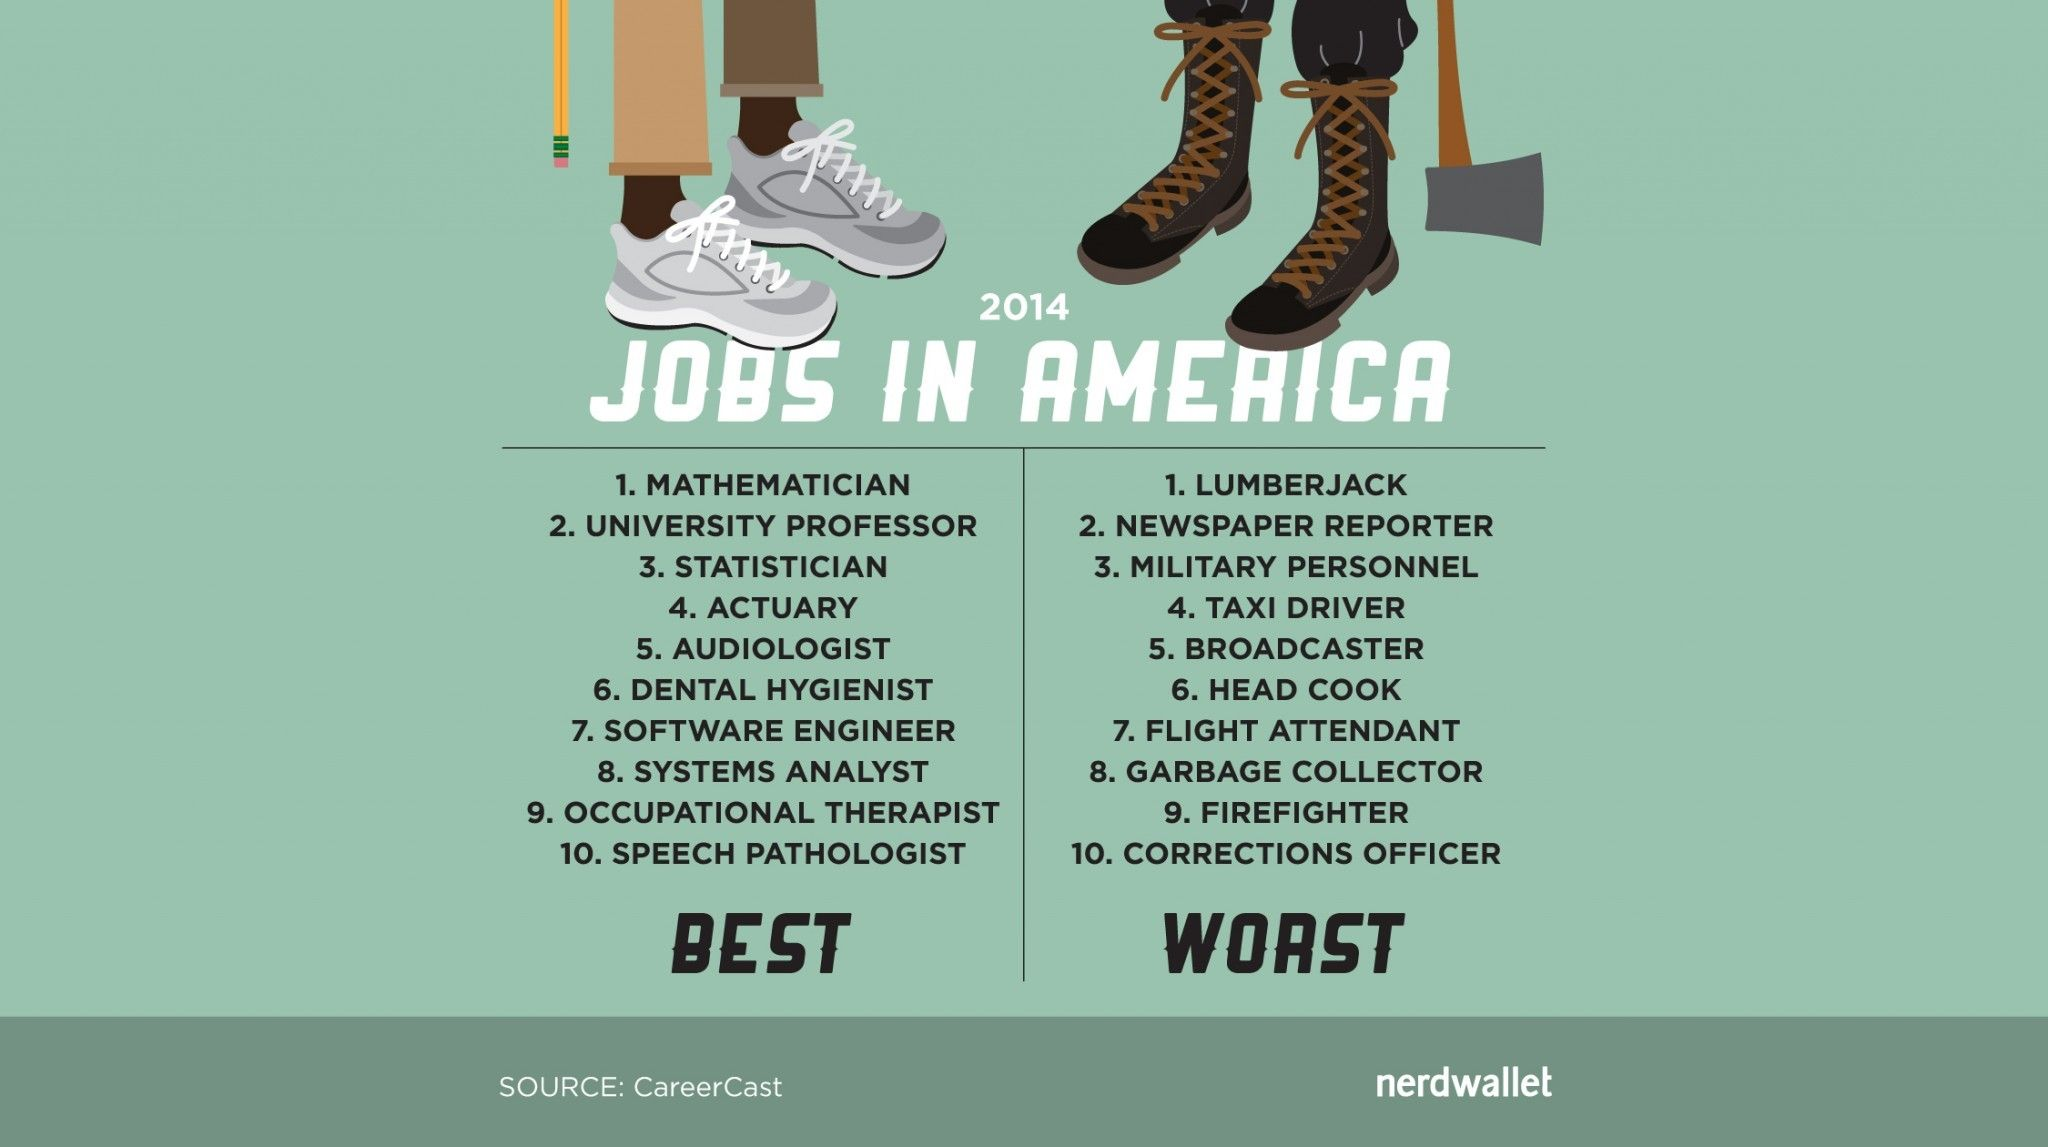 the best and worst jobs in america are nerdwallet